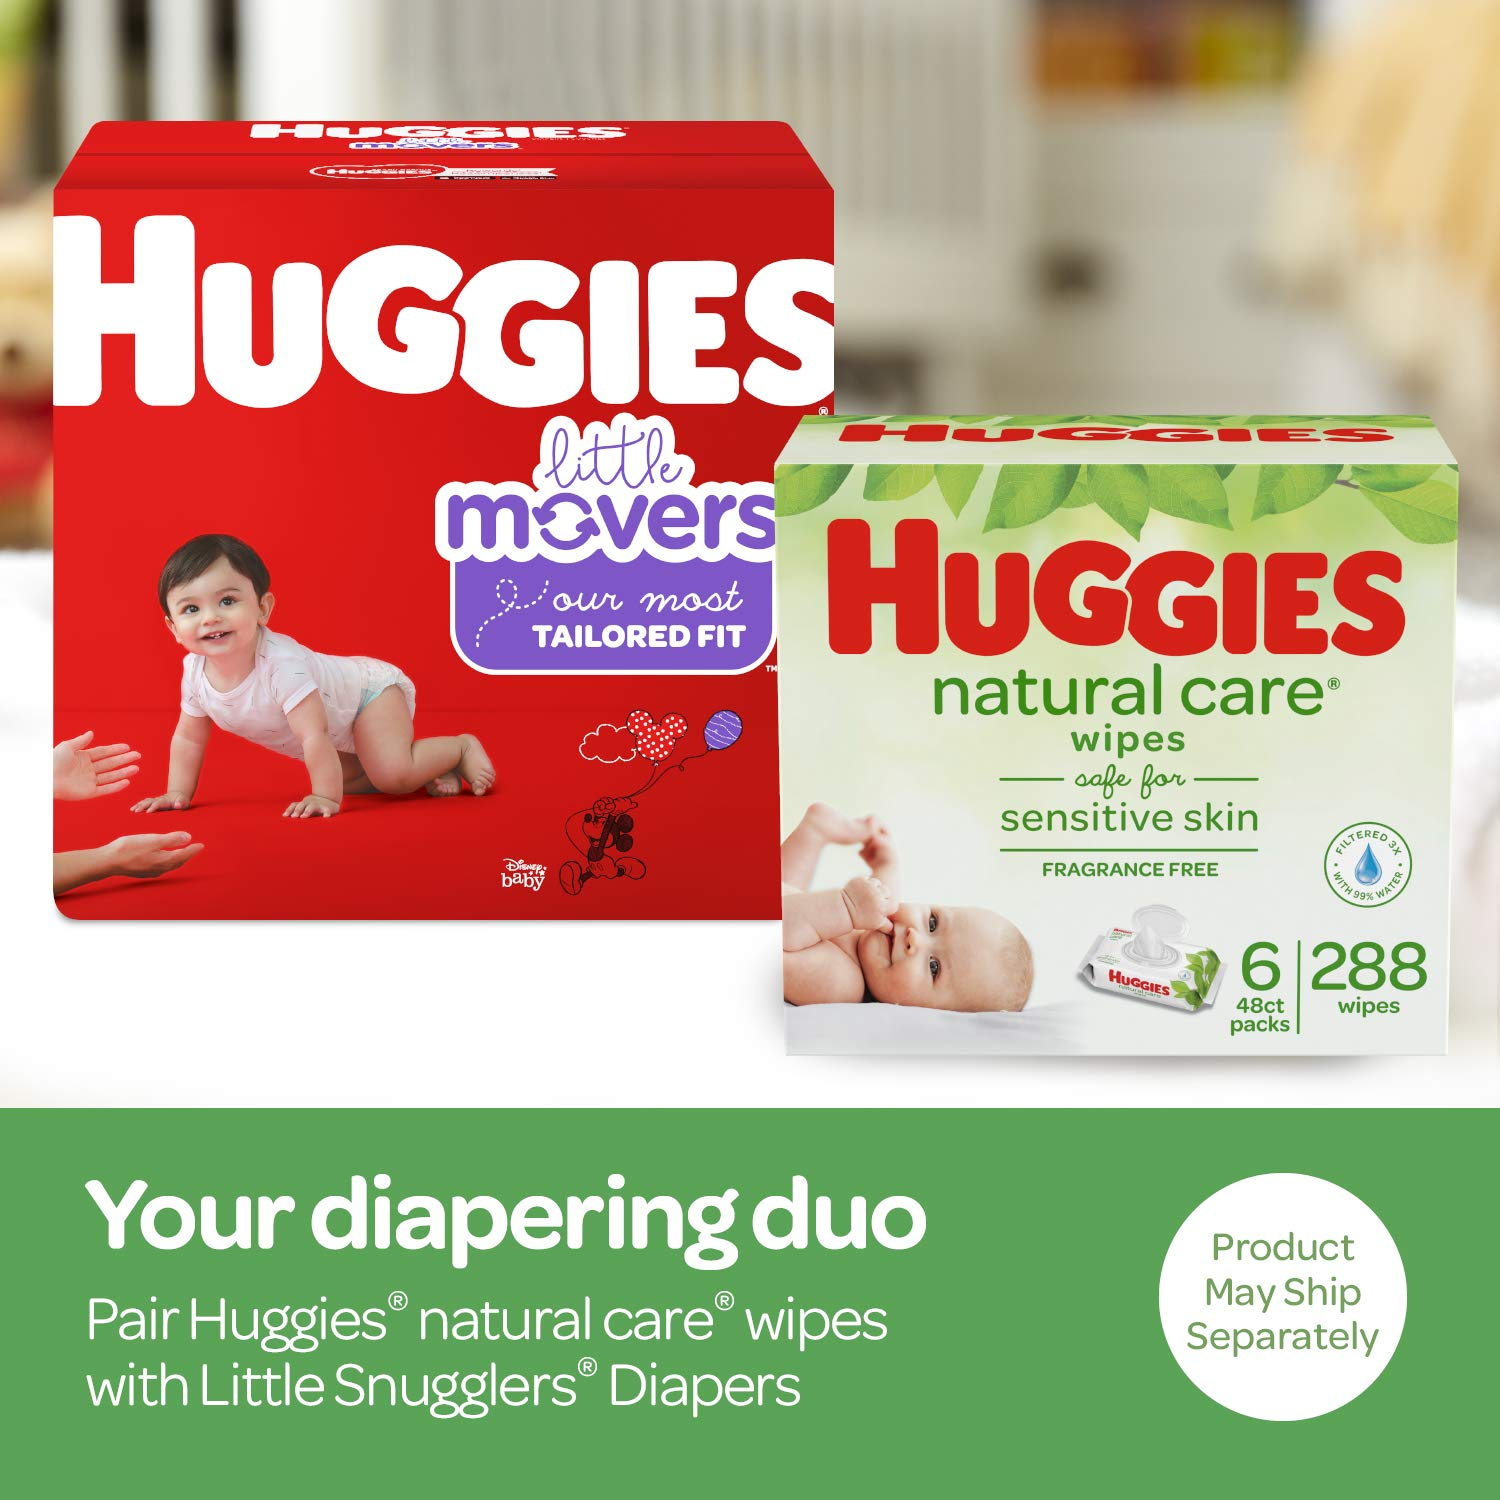 Huggies Brand Bundle – Huggies Little Movers Baby Diapers, Size 5, 124 Ct & Huggies Natural Care Unscented Baby Wipes, Sensitive, 6 Disposable Flip-Top Packs - 288 Total Wipes (Packaging May Vary)